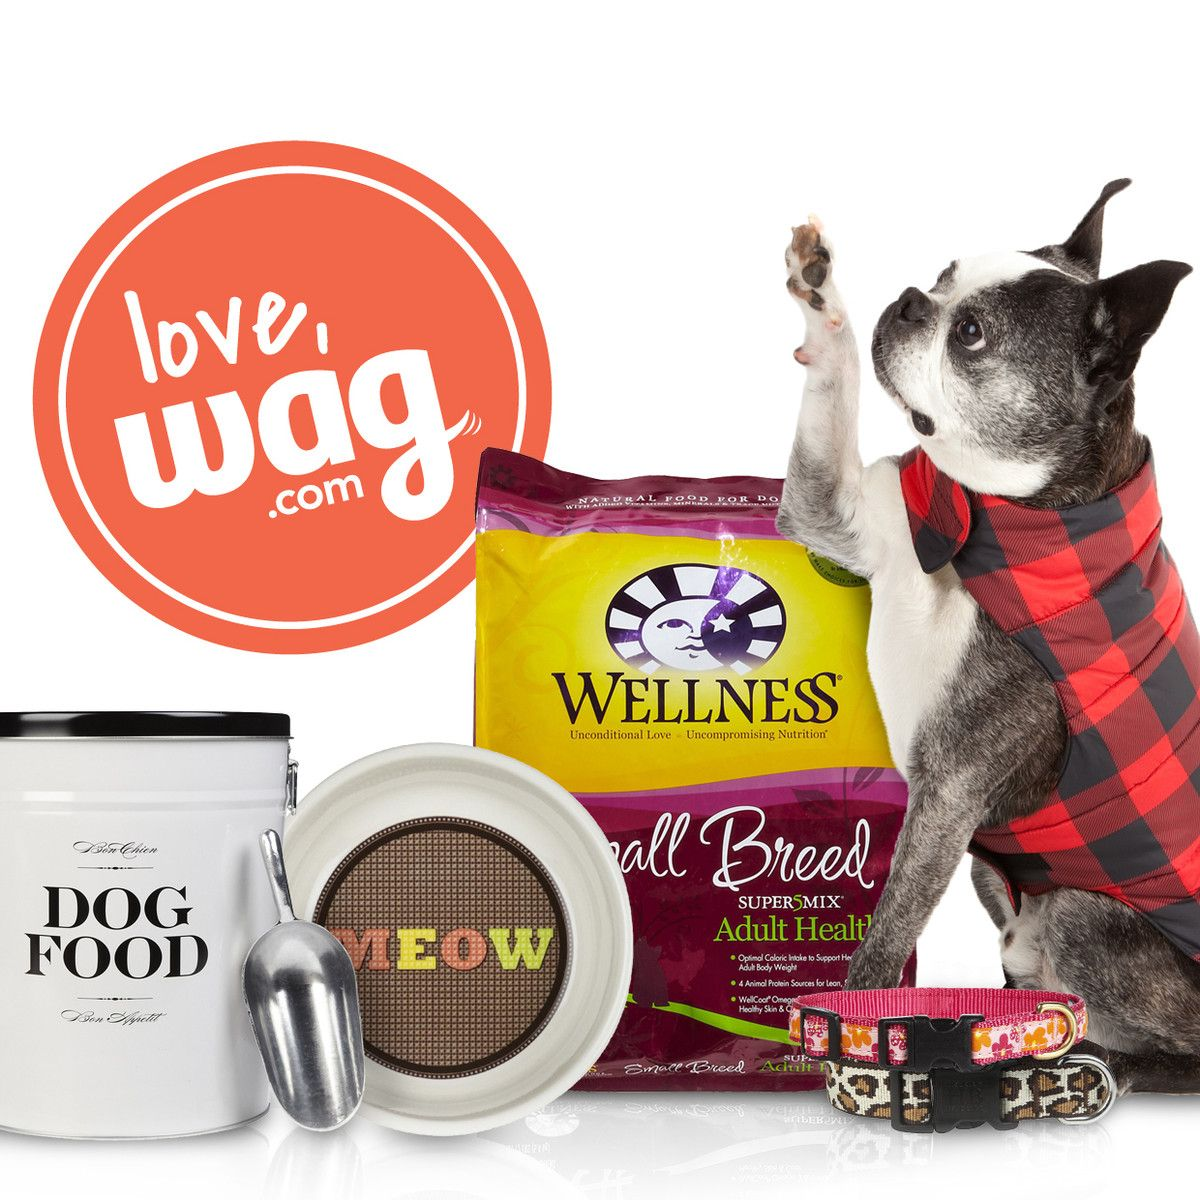 Fab.com | $20 Voucher Good At Wag.com